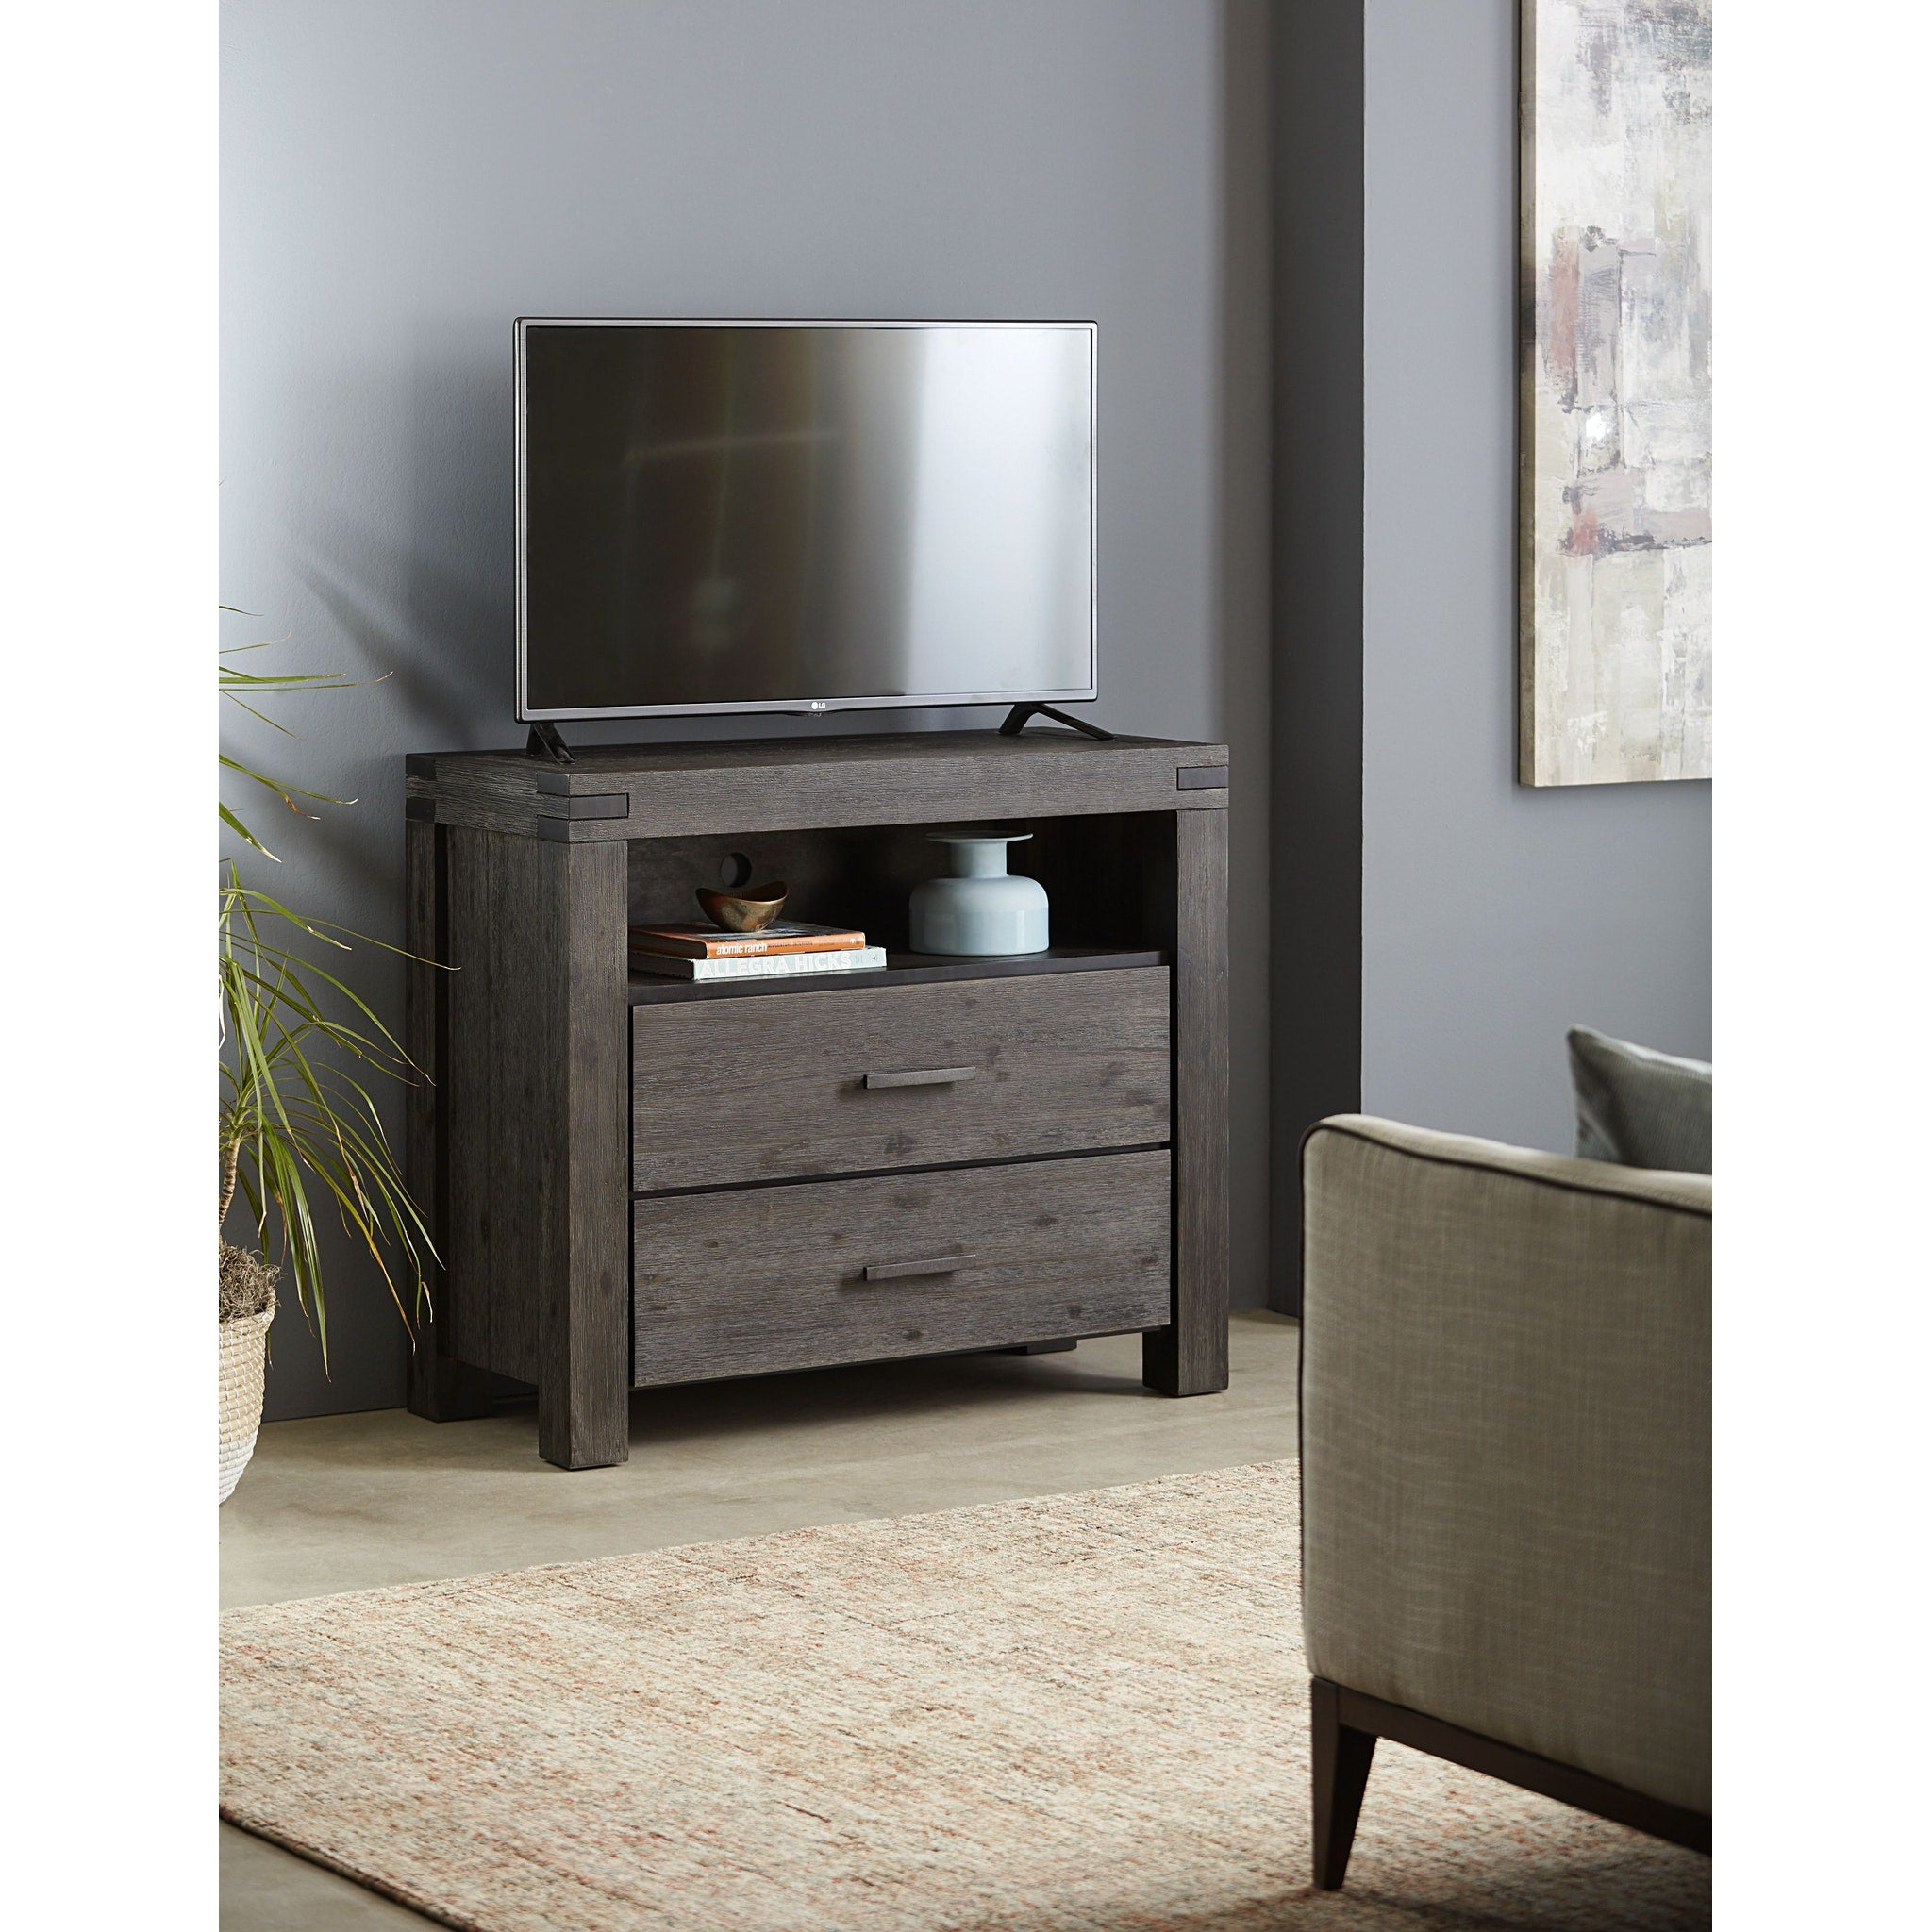 Meadow Two Drawer Solid Wood Media Chest in Graphite